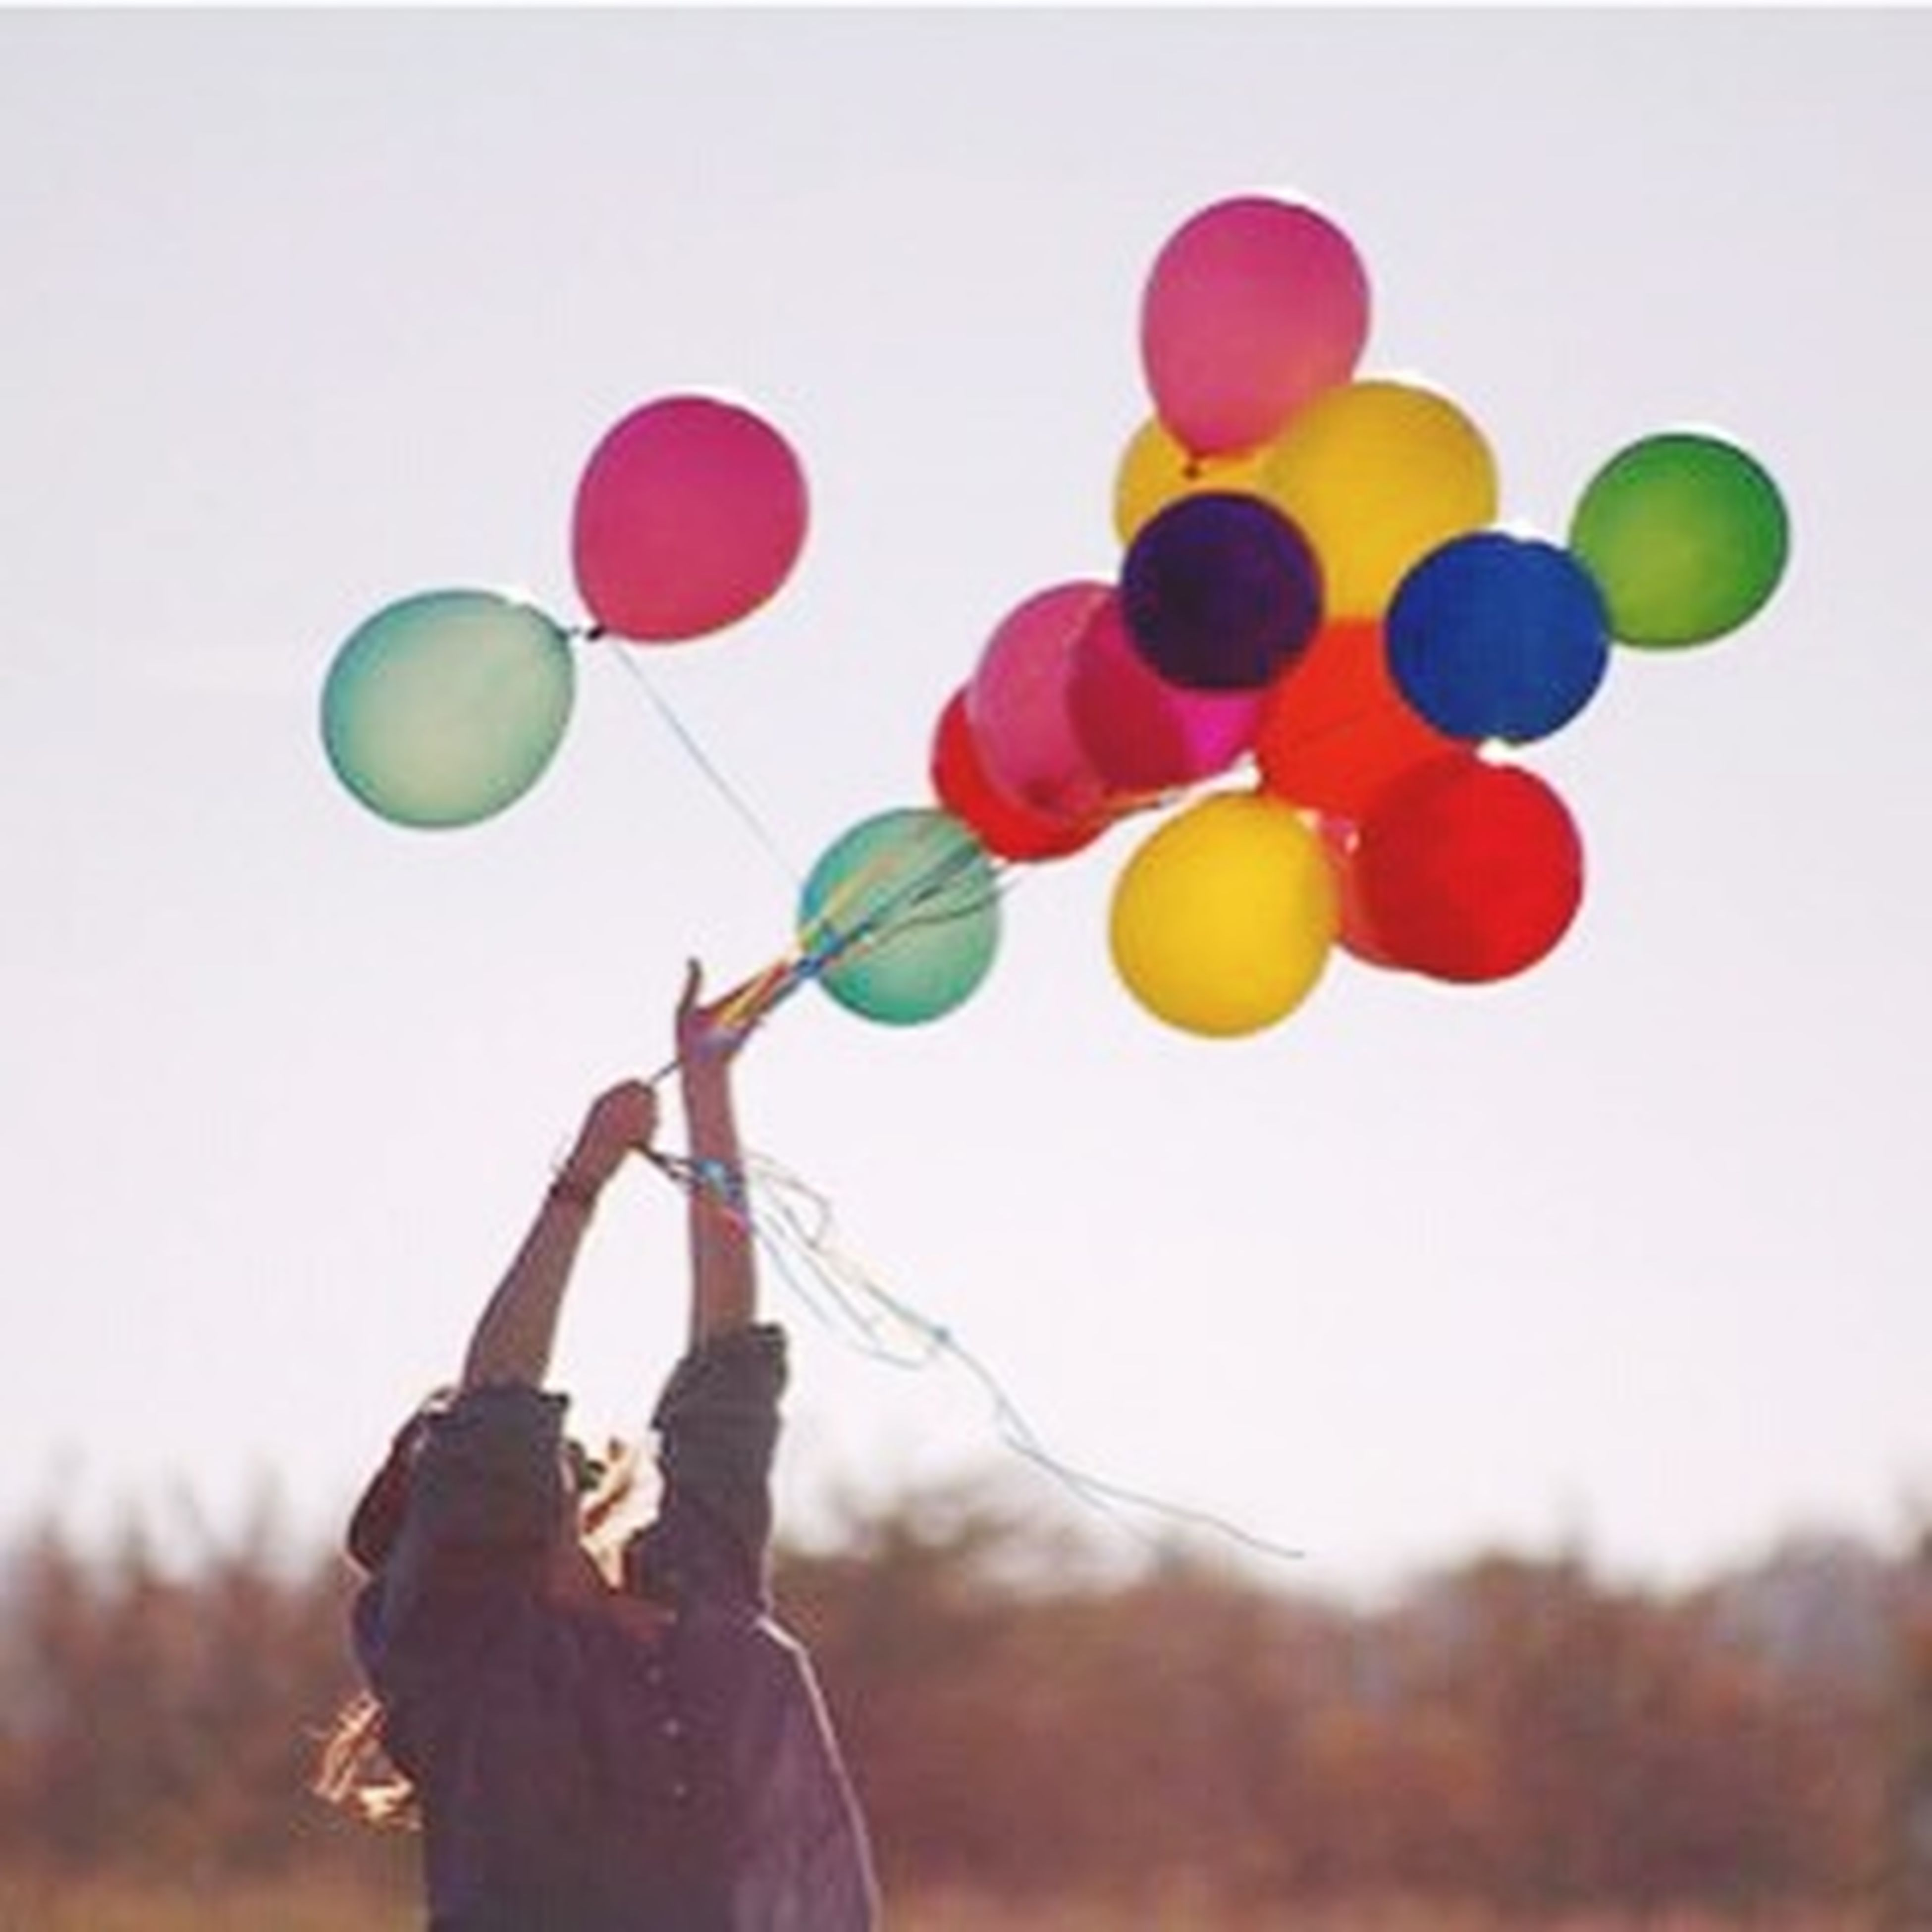 multi colored, balloon, leisure activity, mid-air, clear sky, sky, colorful, copy space, holding, lifestyles, unrecognizable person, childhood, low angle view, variation, hot air balloon, sport, person, toy